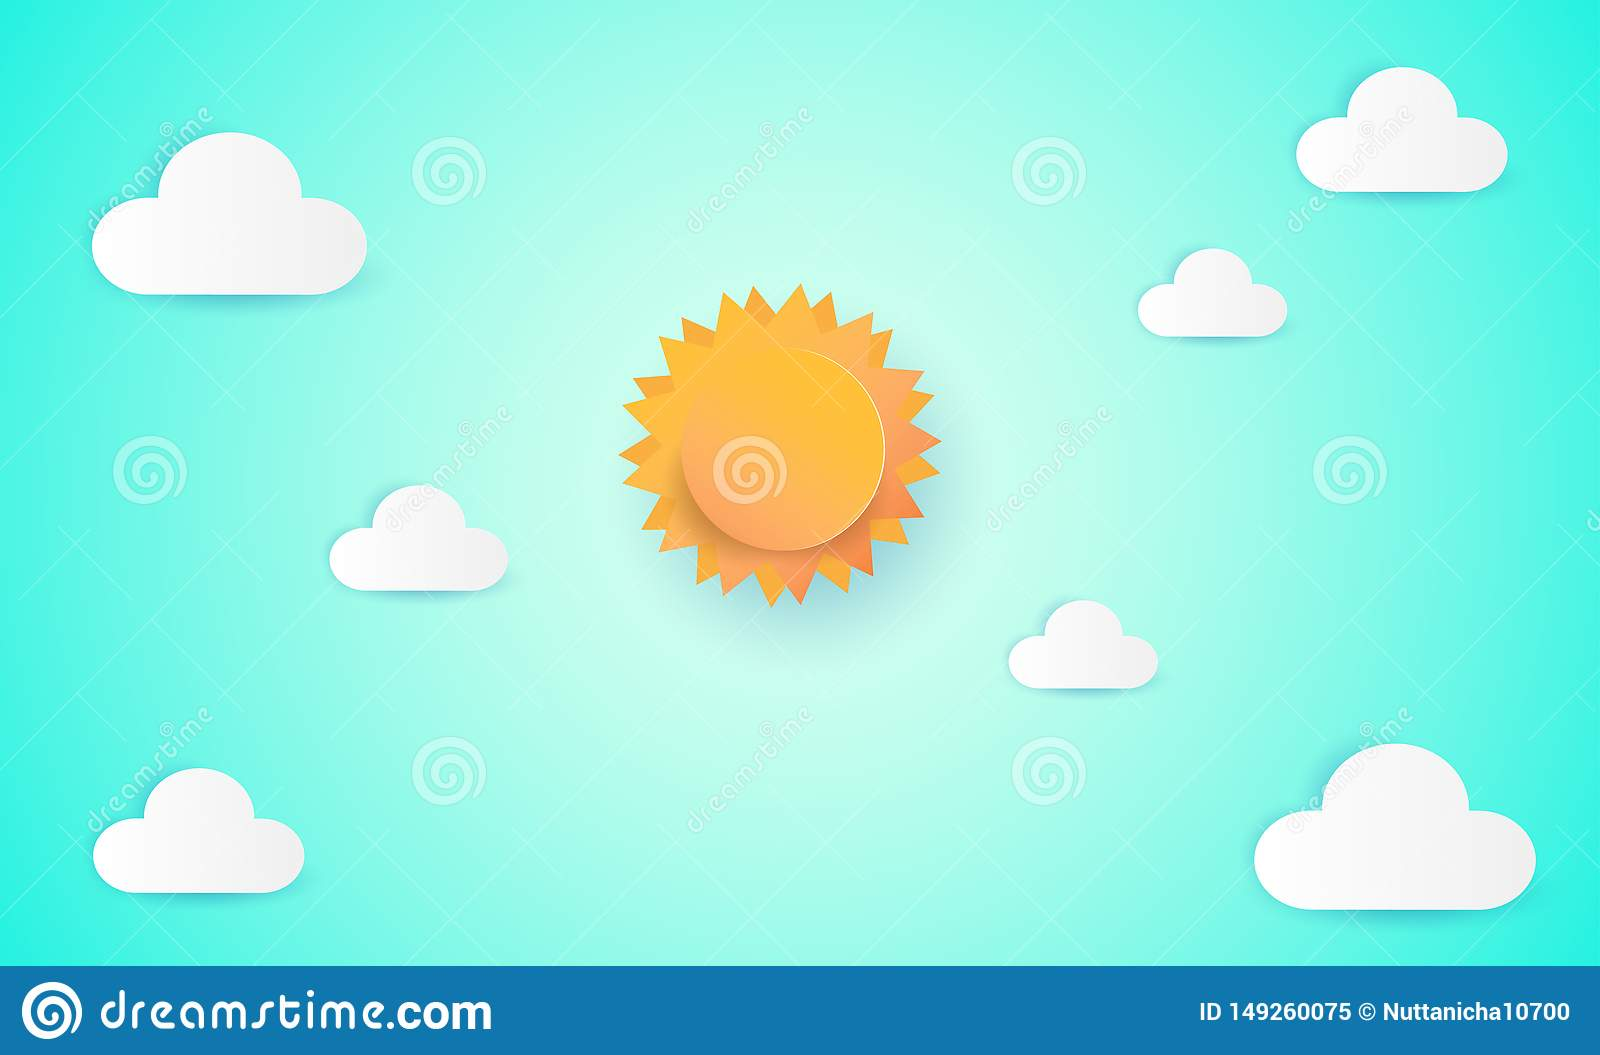 Paper art of sun and cloud on blue sky. Paper cut style, abstract background composed of white paper clouds and sun, illustration